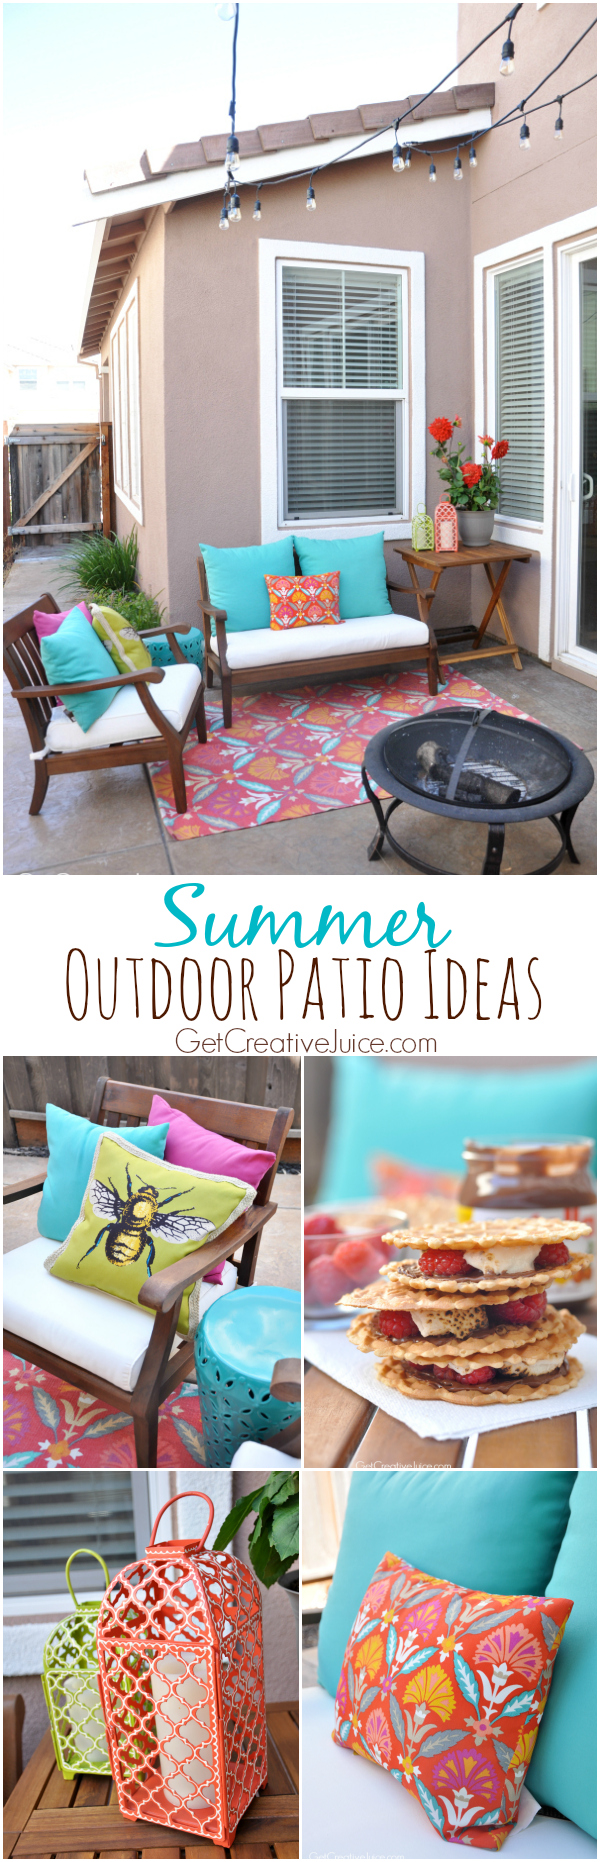 Summer Outdoor Patio Ideas